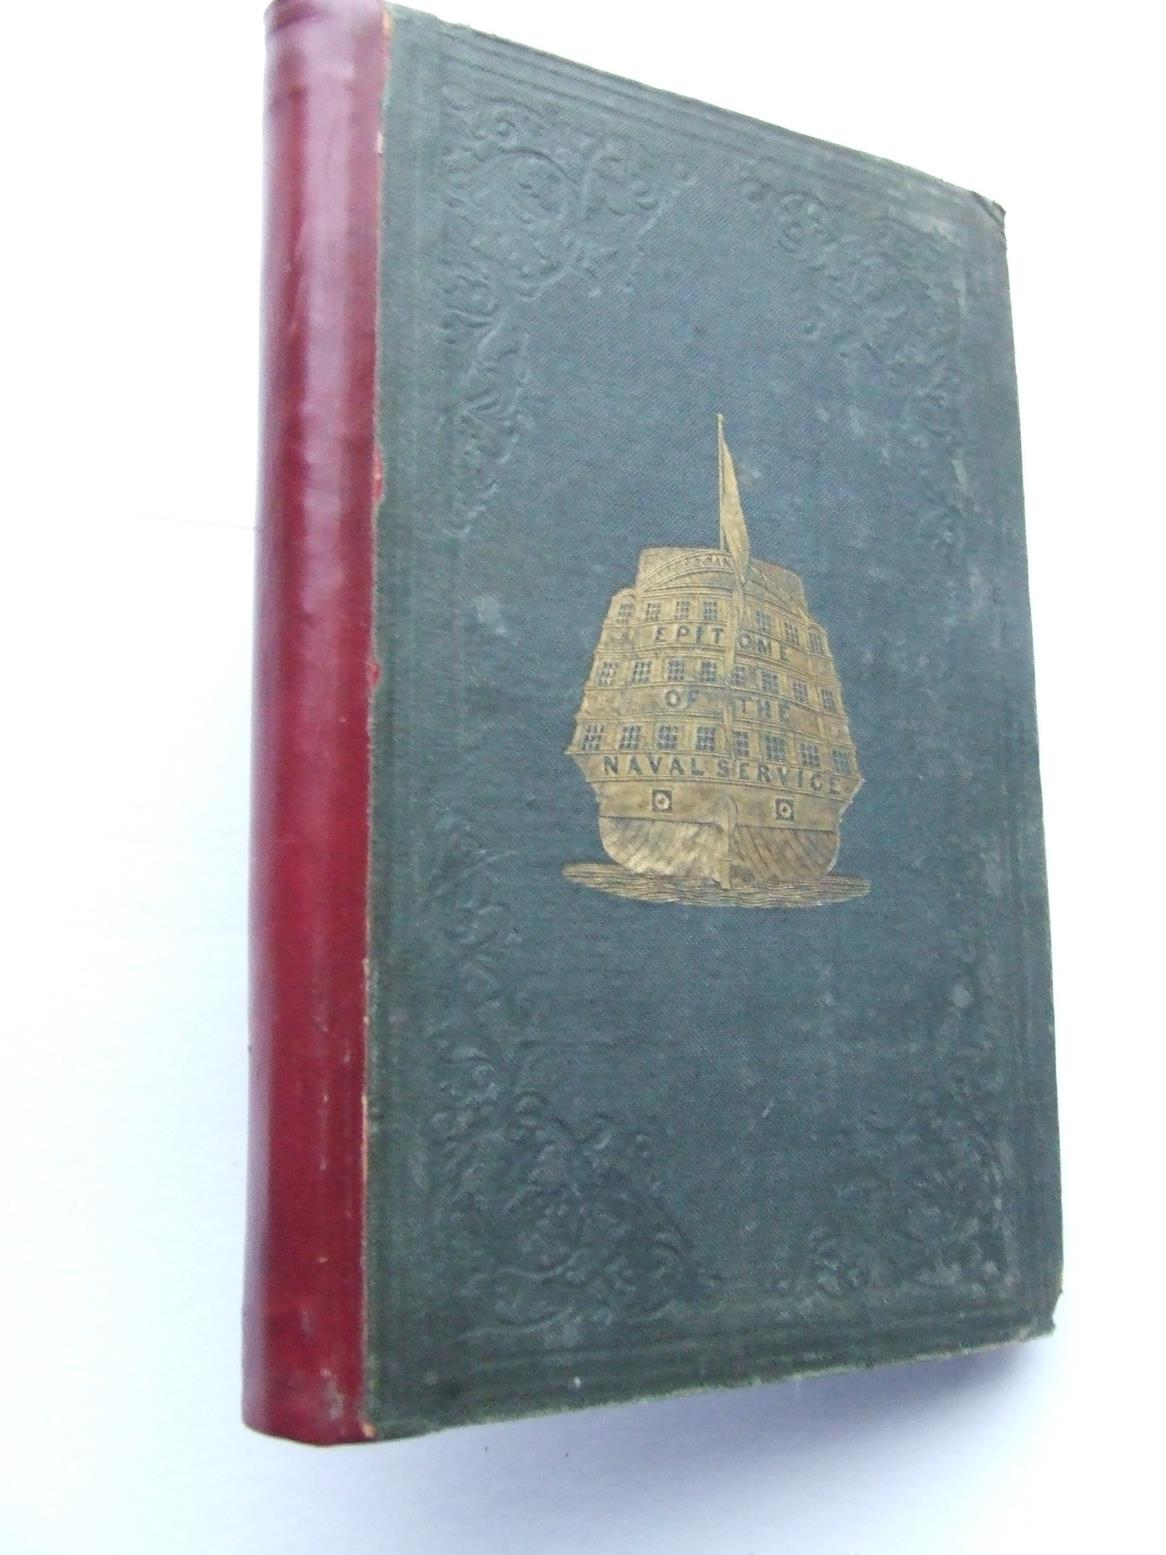 An Epitome, Historical and Statistical, Descriptive of the Royal Naval Service of England